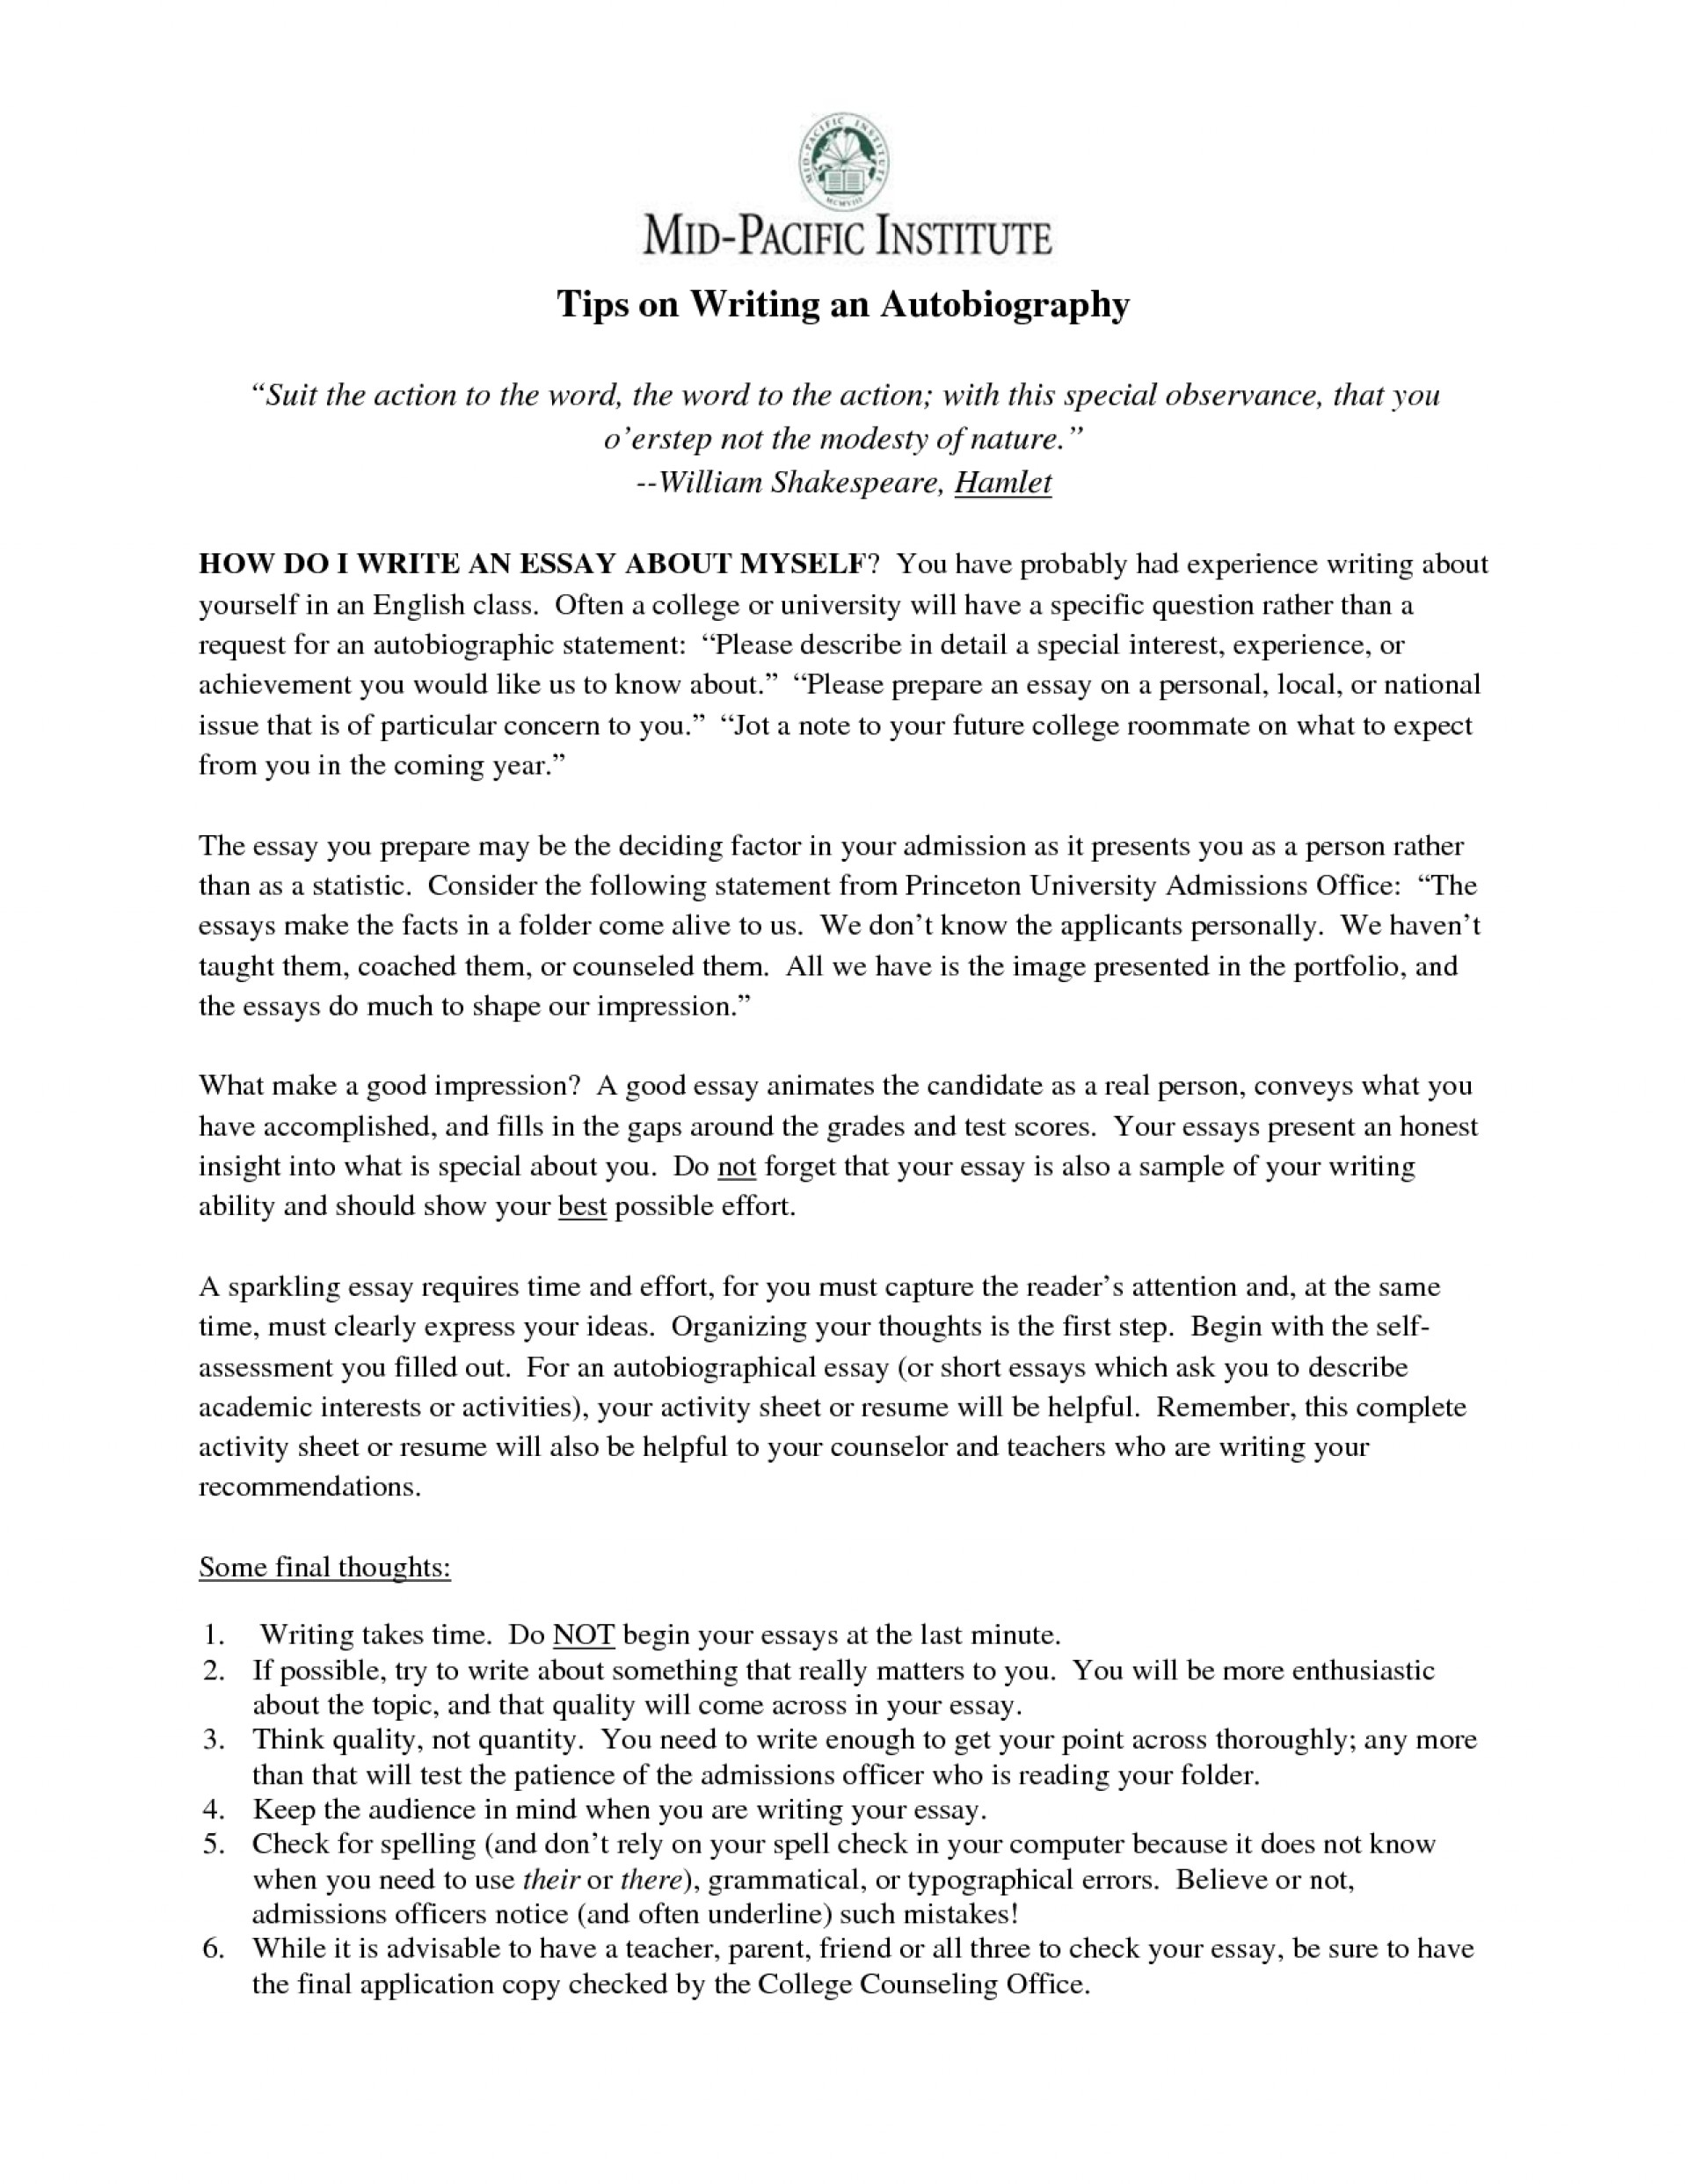 012 Tips To Write Good Essay Help Me An About Myself How For Writing Persuasive With English L College Great Scholarship Narrative Sat Application Argumentative Marvelous A In Exam 1920